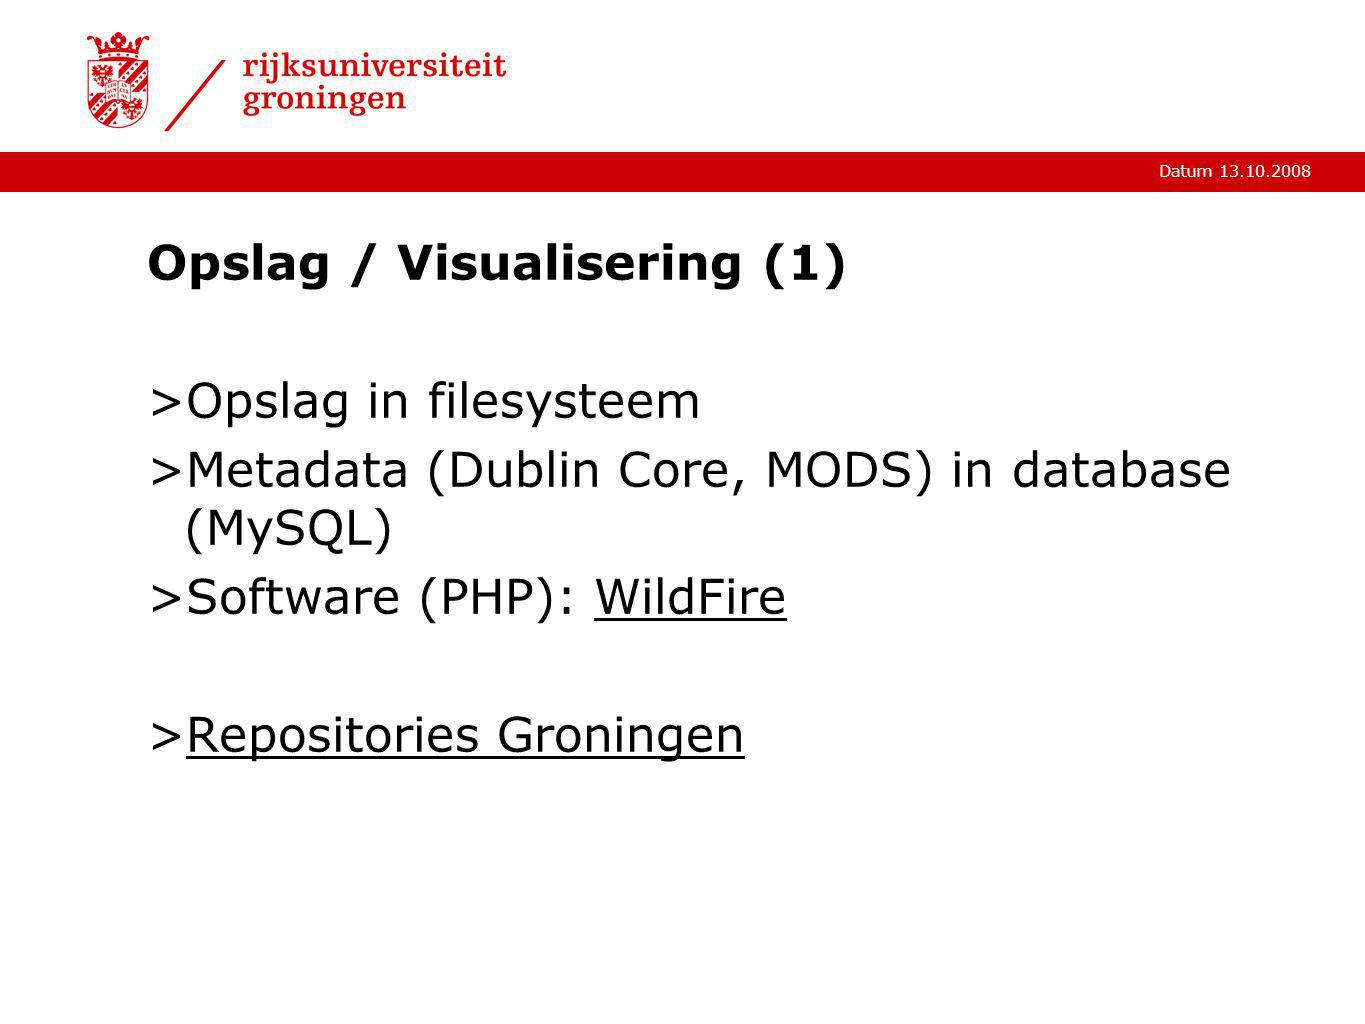 Datum 13.10.2008 Opslag / Visualisering (1) >Opslag in filesysteem >Metadata (Dublin Core, MODS) in database (MySQL) >Software (PHP): WildFireWildFire